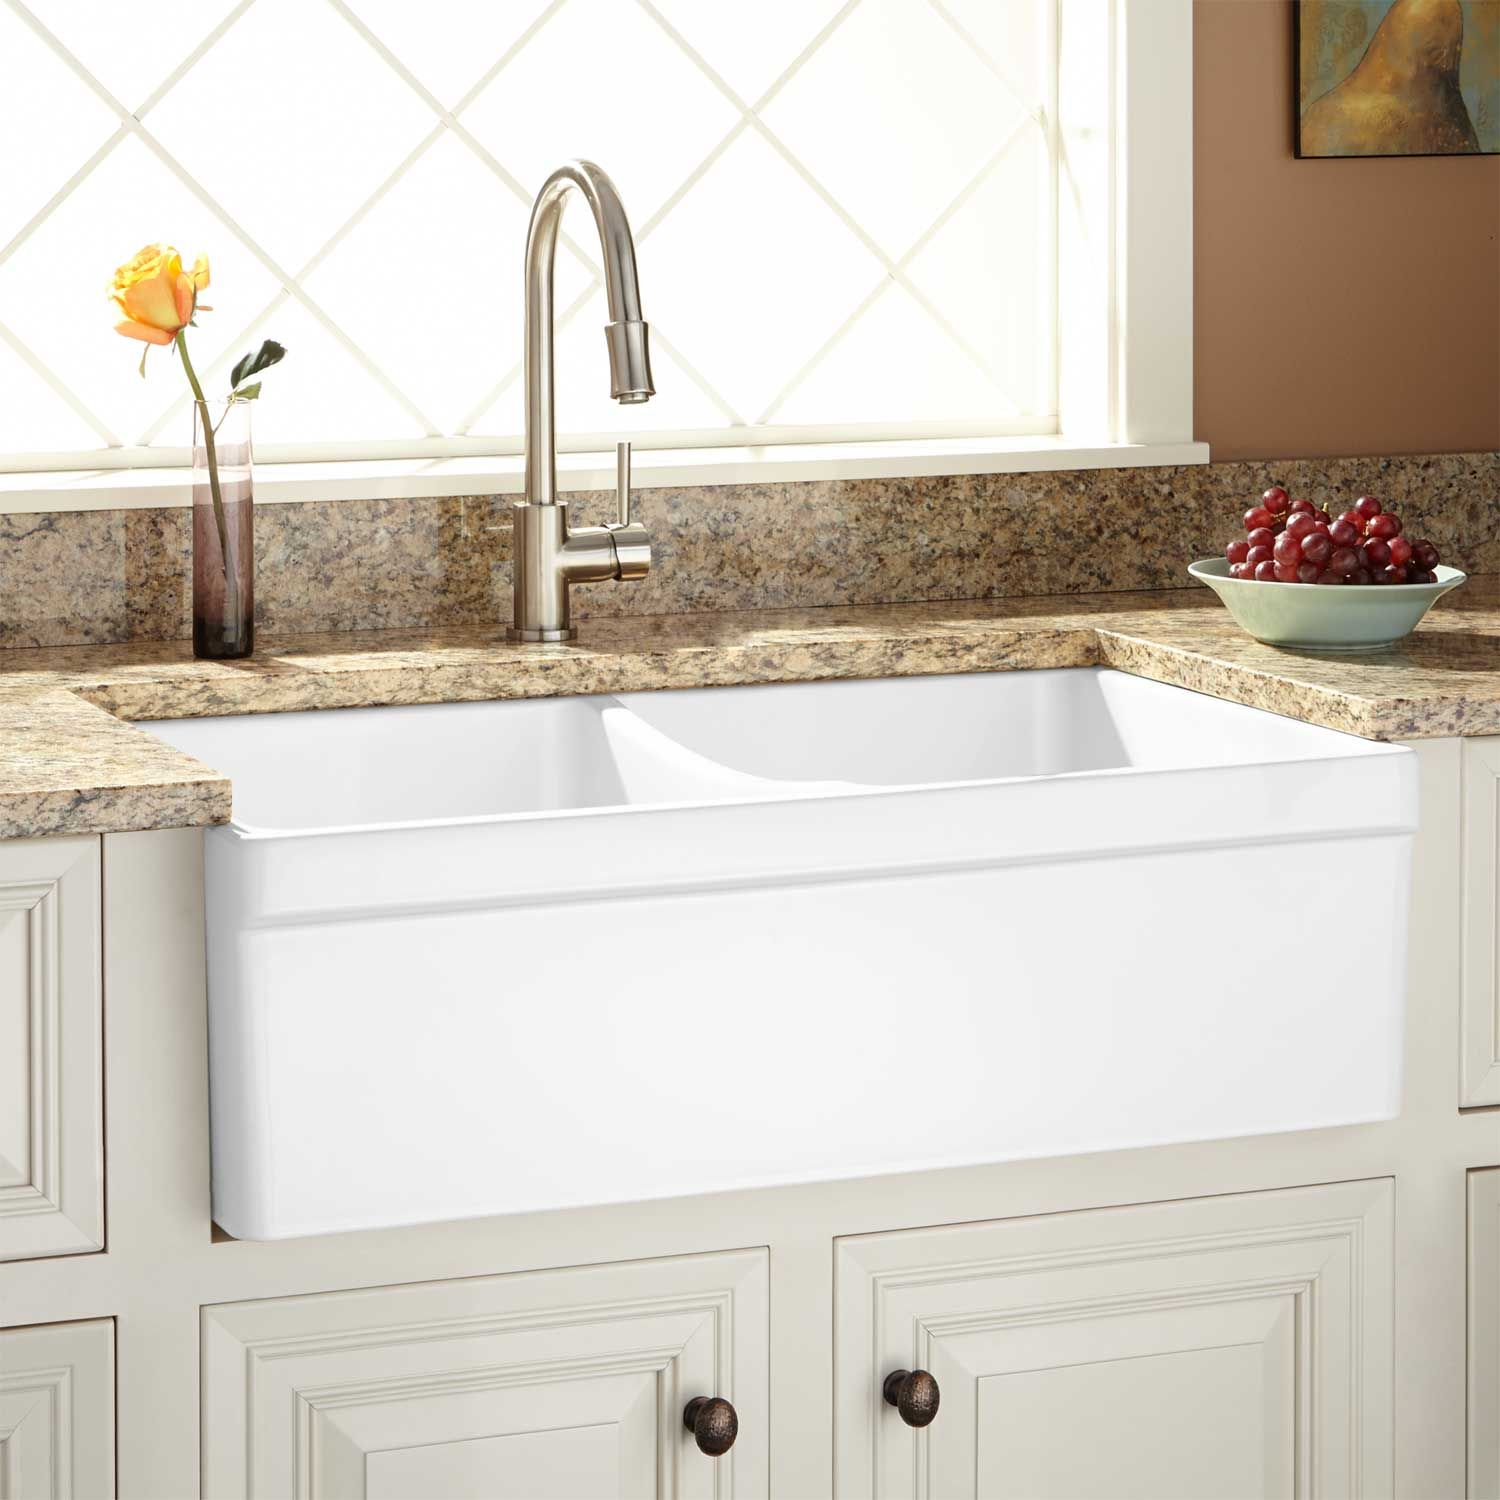 33 Fiammetta Double Bowl Fireclay Farmhouse Sink With Belted